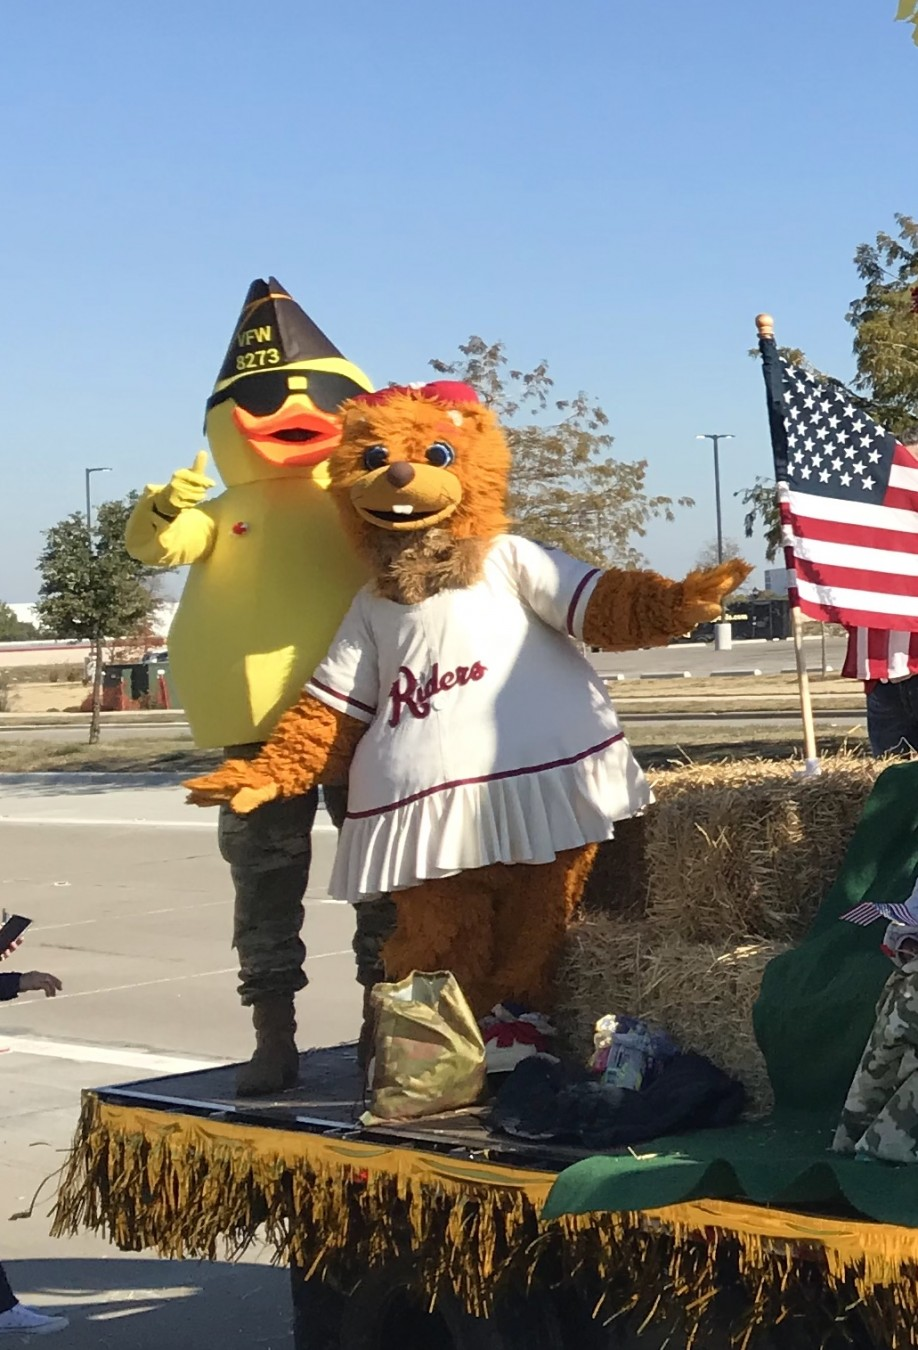 VFW Duck BOOTS and RoughRiders' DAISY mascots introduce OPERATION DUCK at the Frisco Community Parade - November 9 in Frisco TX.